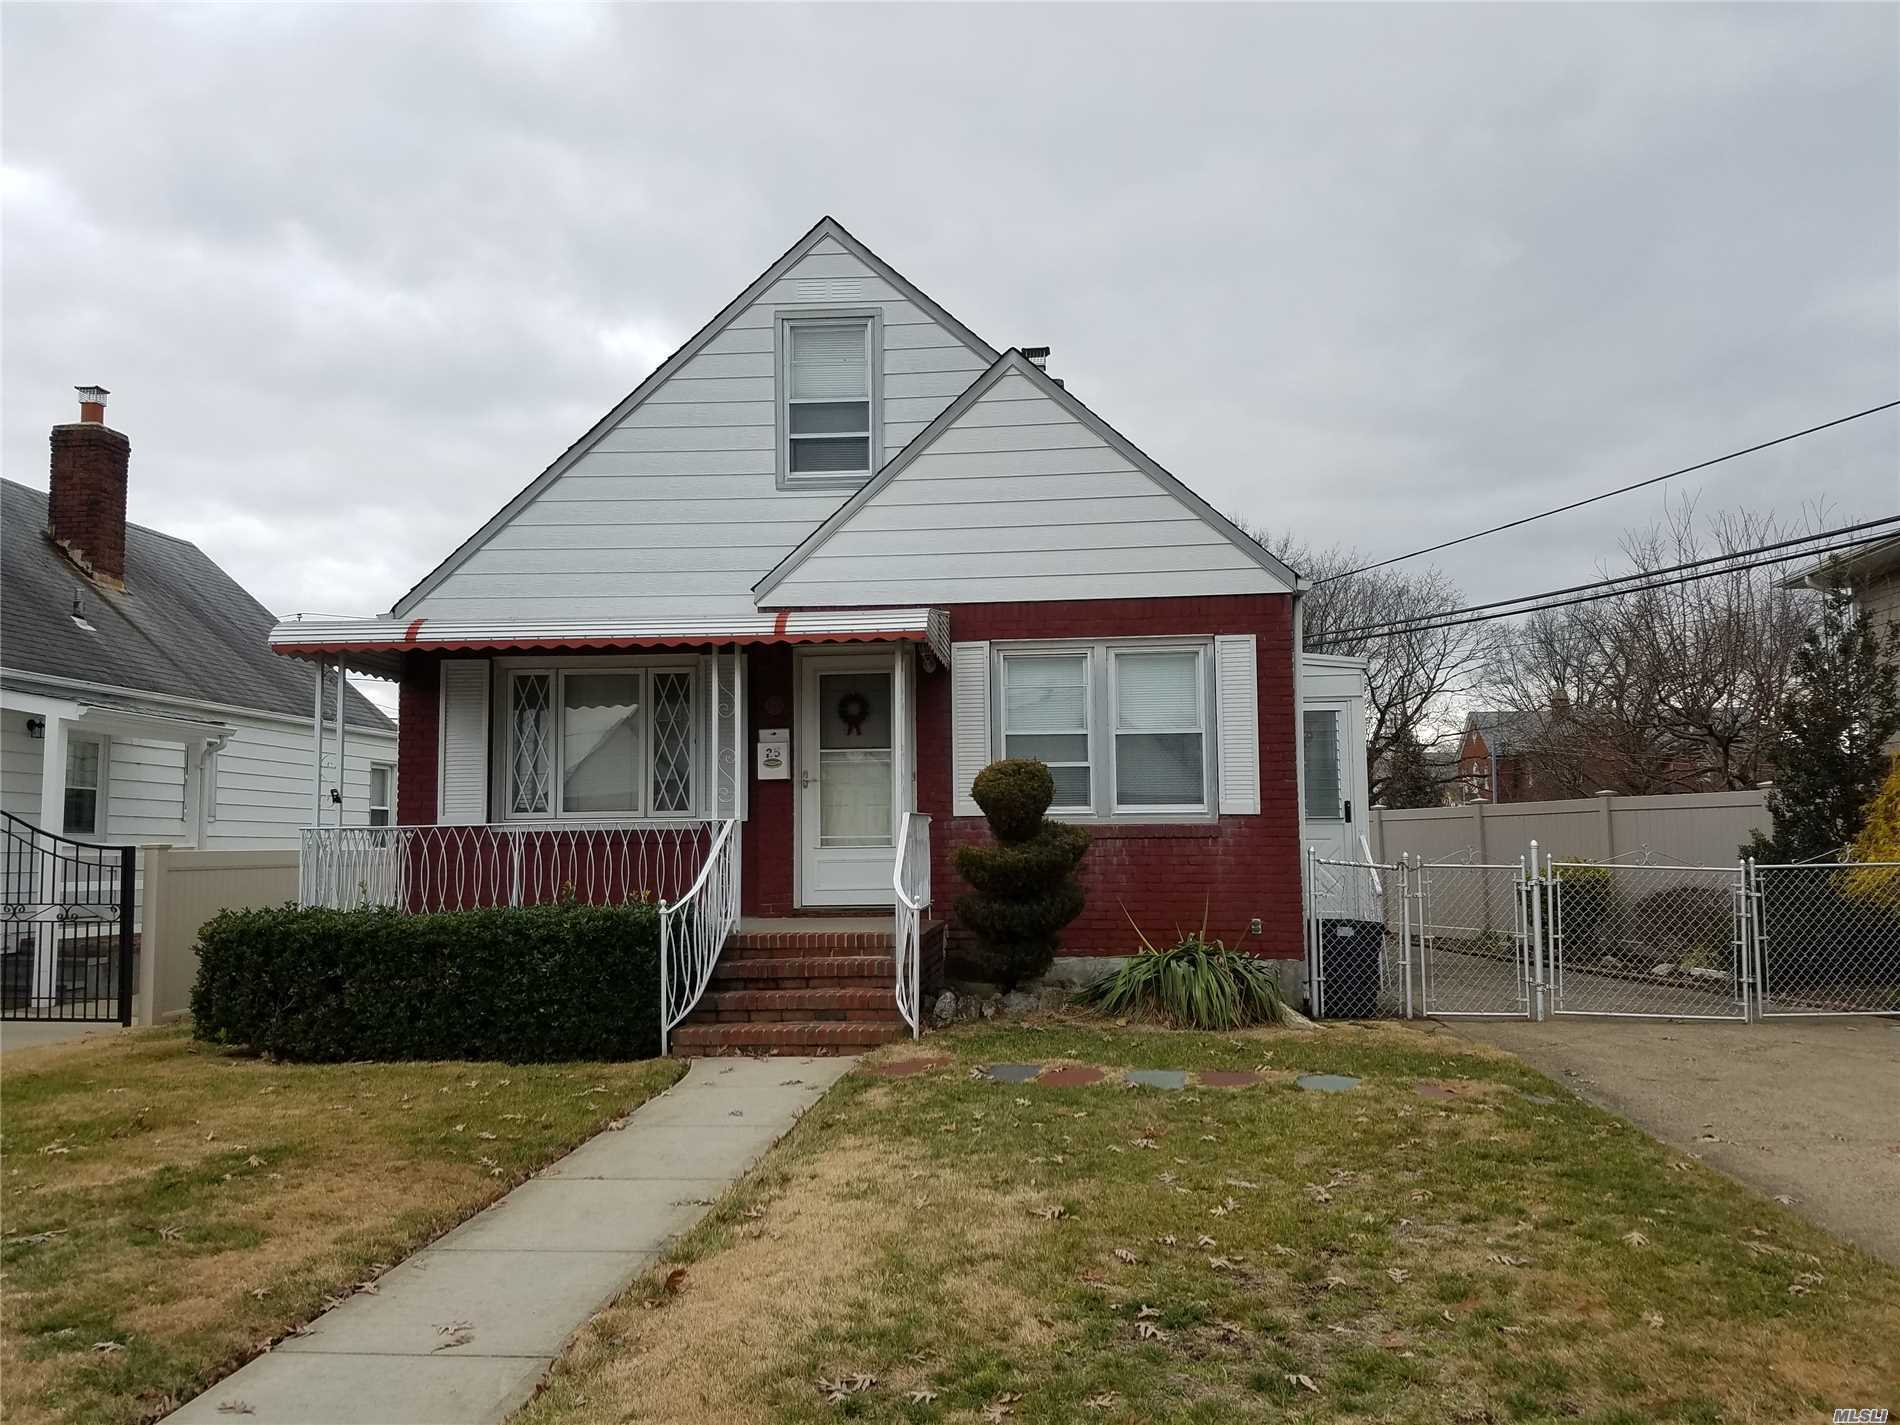 A Must See!! Be Sure Not To Miss This Bright Spacious 6 Room Cape Located On A Quiet Street. Features Include Living Room, Eat In Kitchen, 4 Bedrooms, Bath, 1/2 Finished Basement, New Appliances, Hardwood Floors On 62X106 Property.